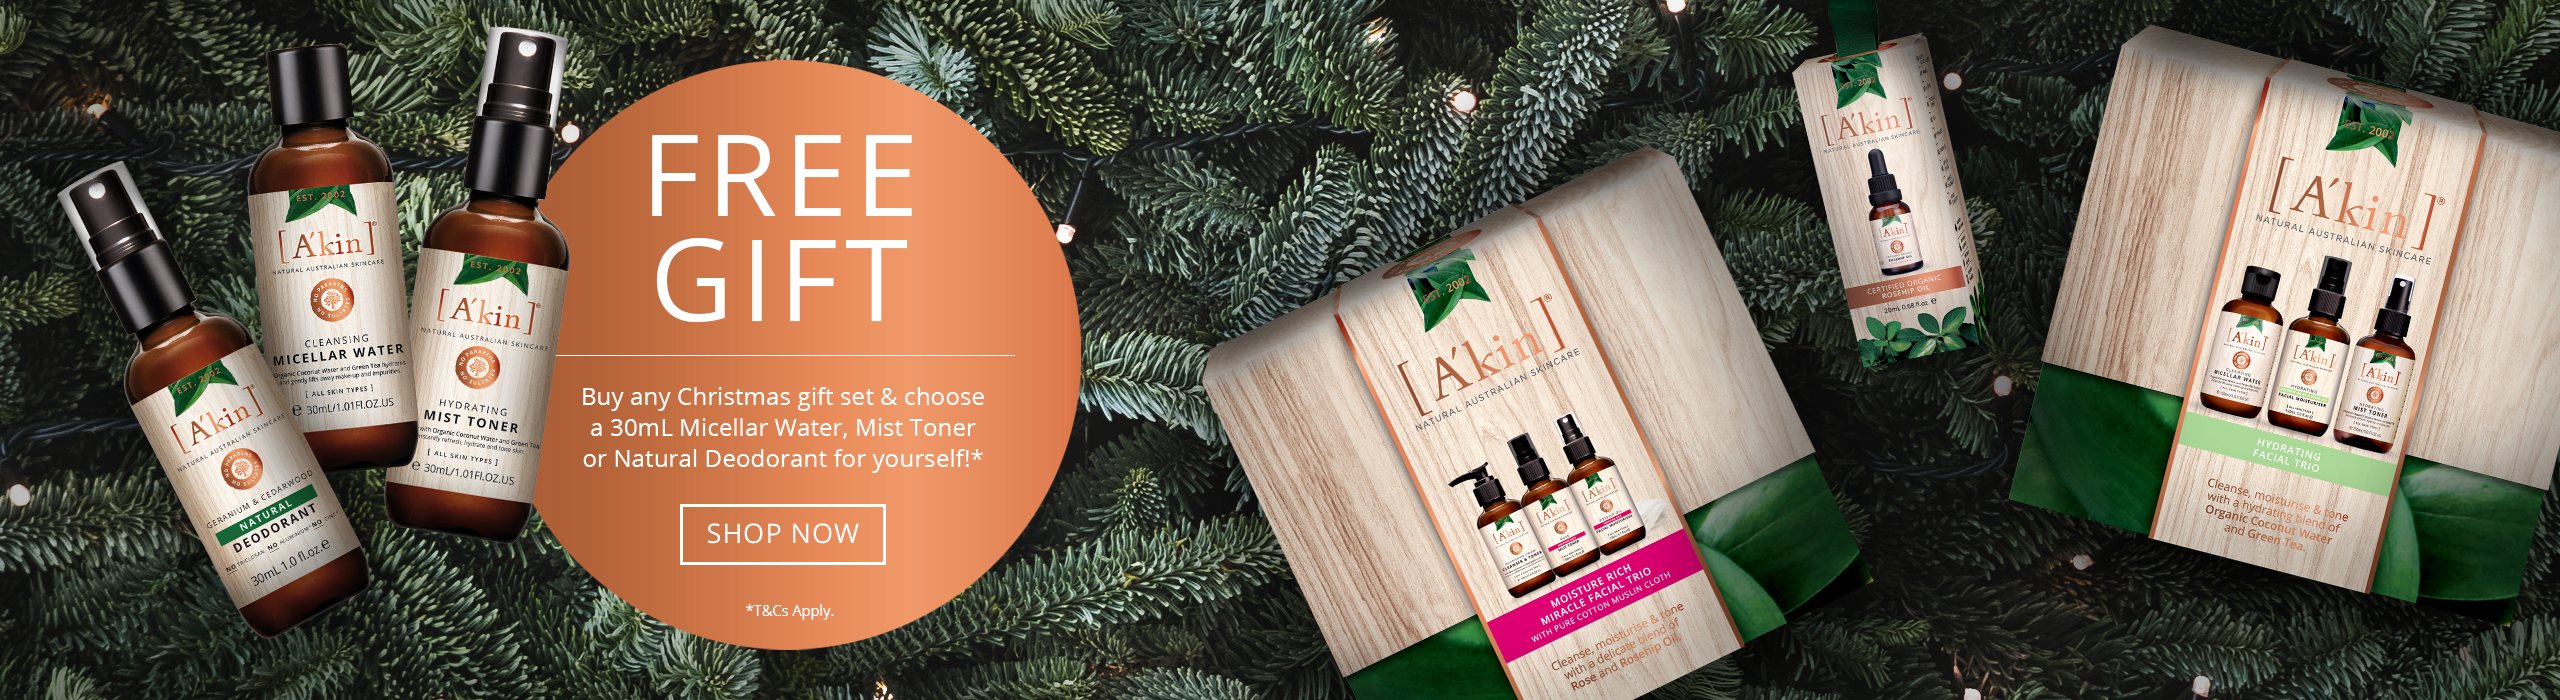 Buy any Christmas gift set & choose a 30mL Micellar Water, Mist Toner or Natural Deodorant for yourself!*